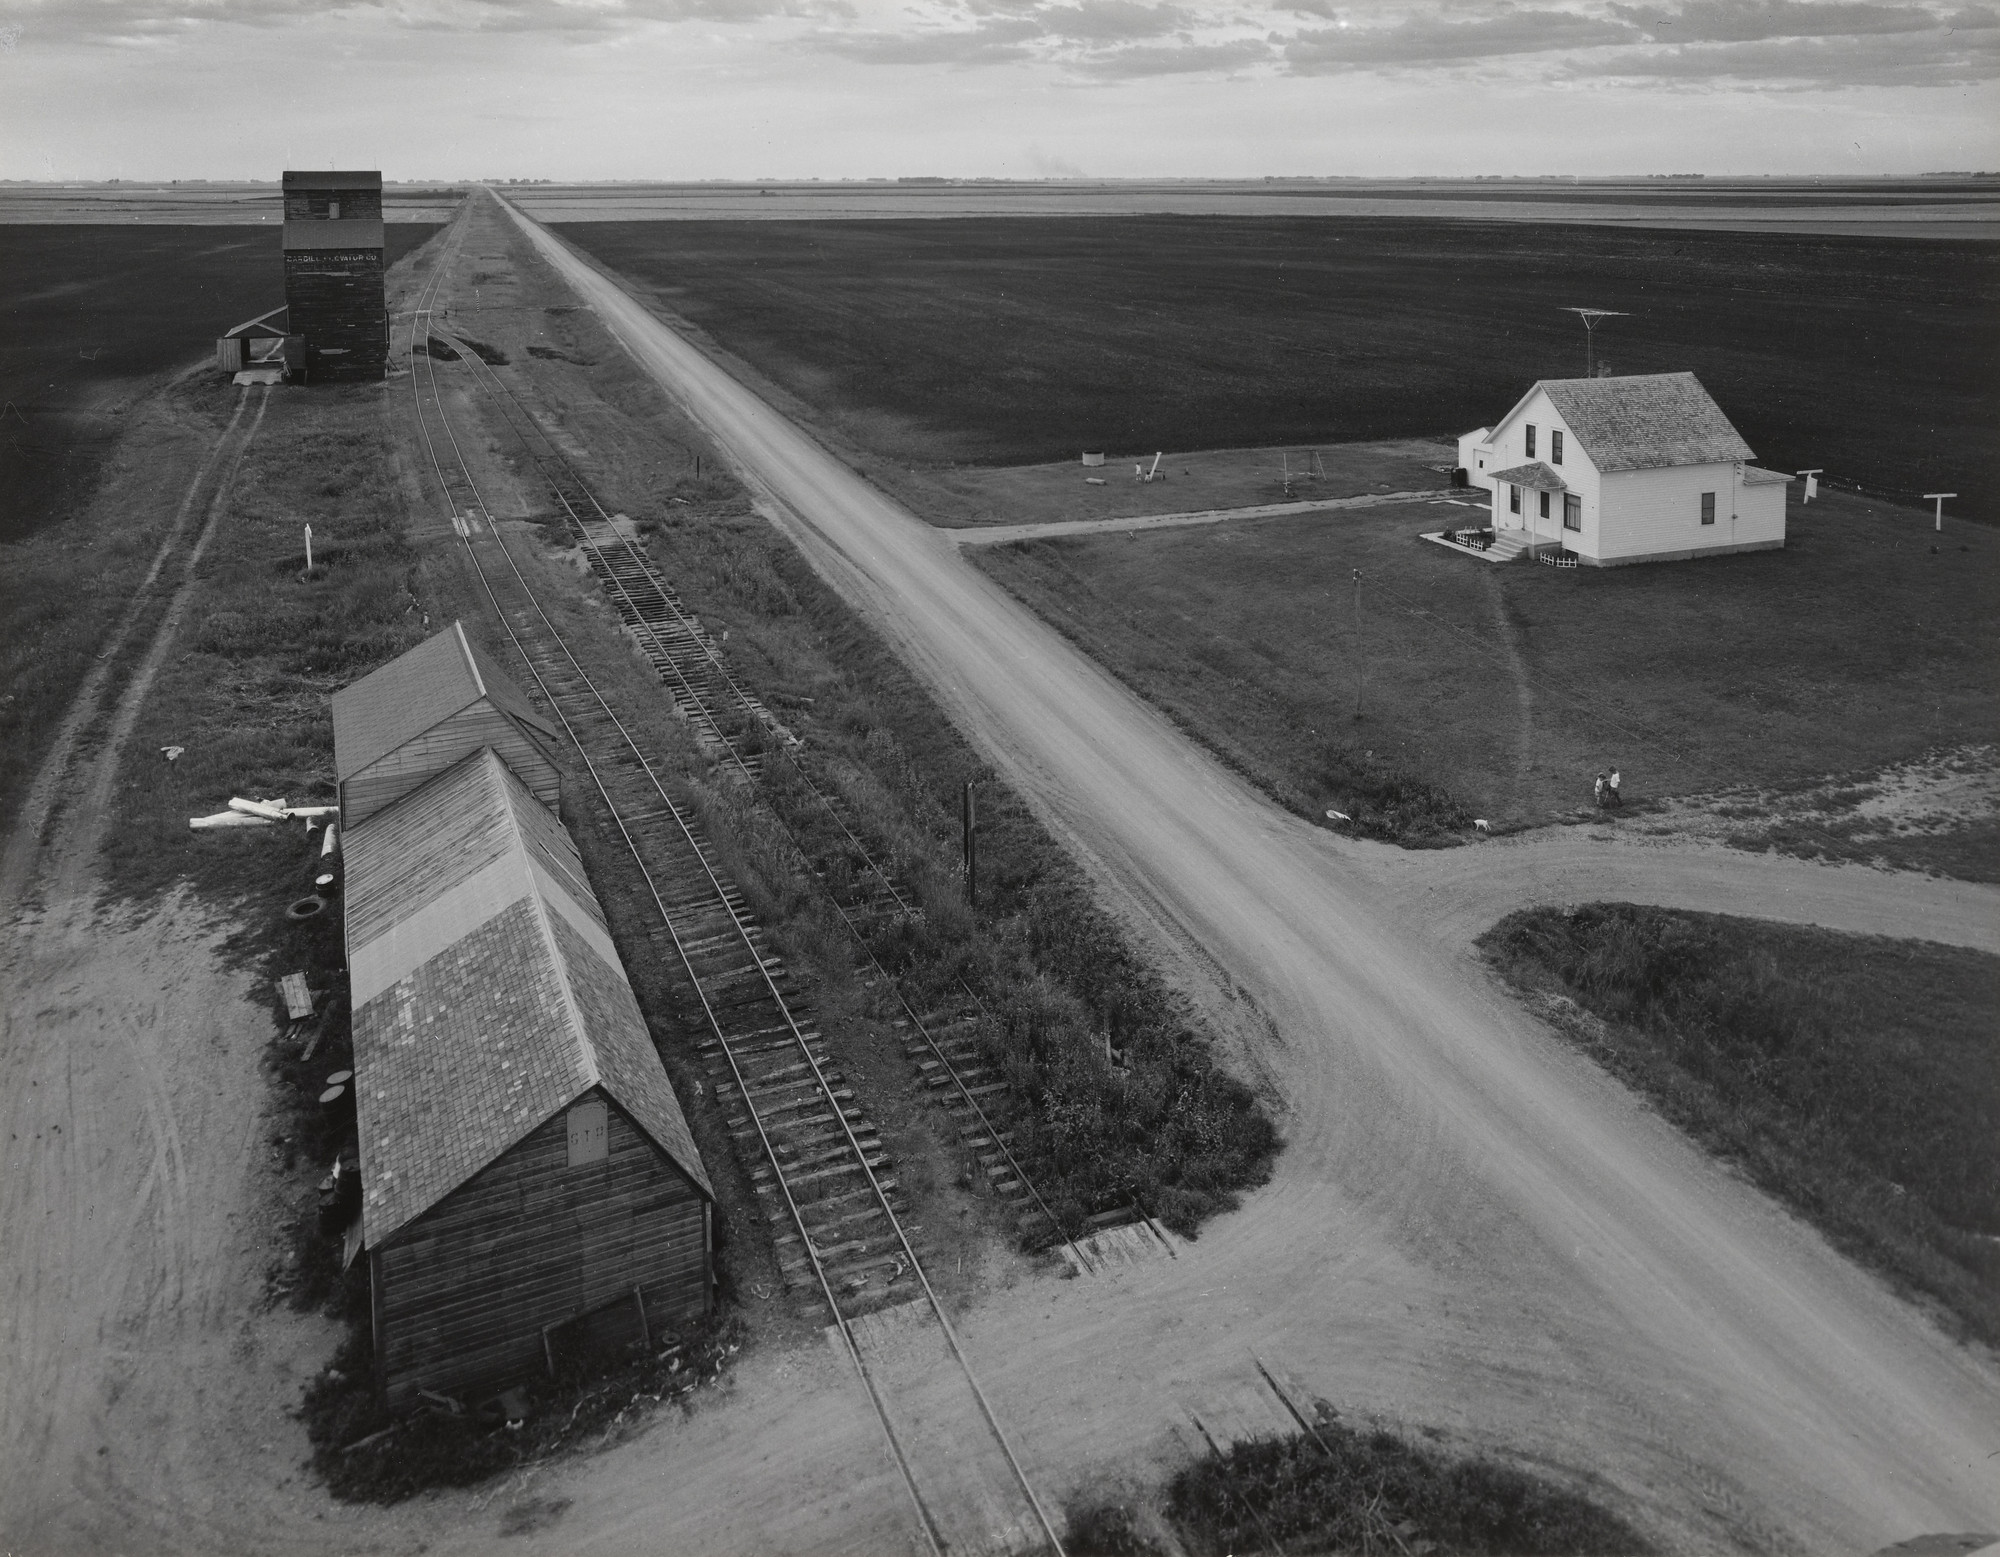 John Szarkowski. From Country Elevator, Red River Valley. 1957. Gelatin silver print, 10 5⁄16 × 13 1/4″ (26.2 × 33.6 cm). The Museum of Modern Art. The Family of Man Fund. © John Szarkowski